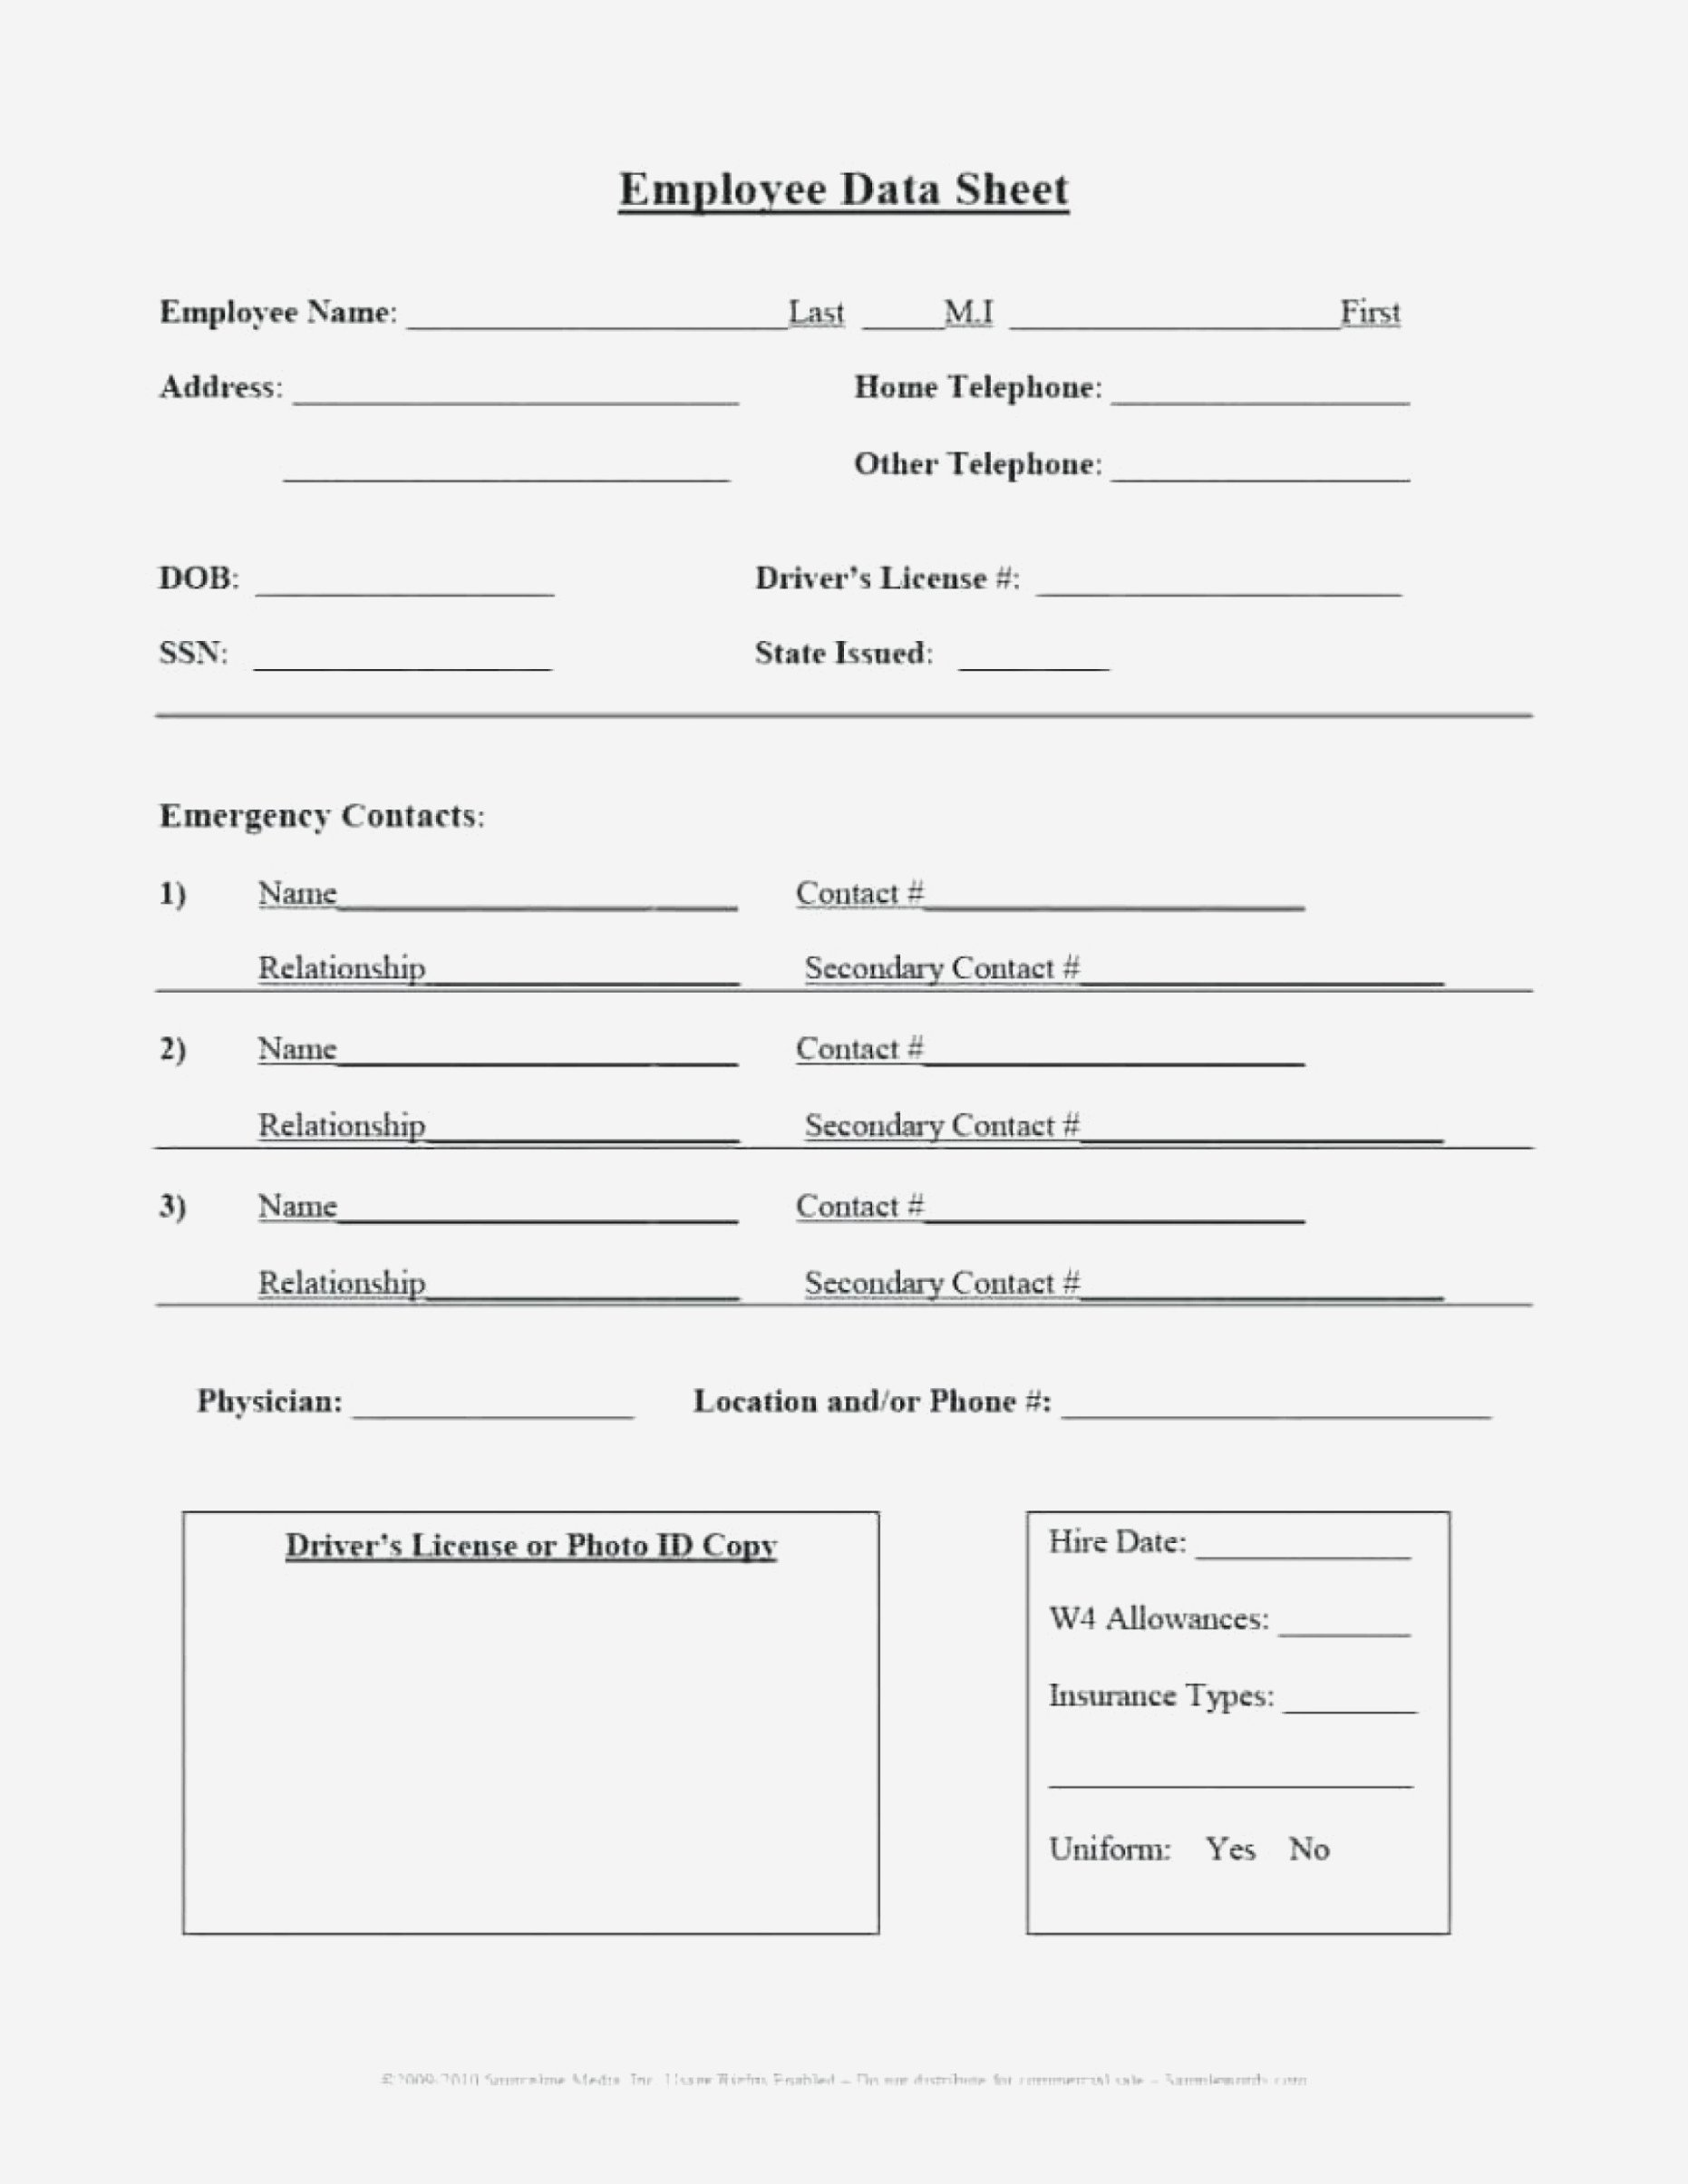 Contact Information form Template Inspirational the Death Student Emergency Contact form